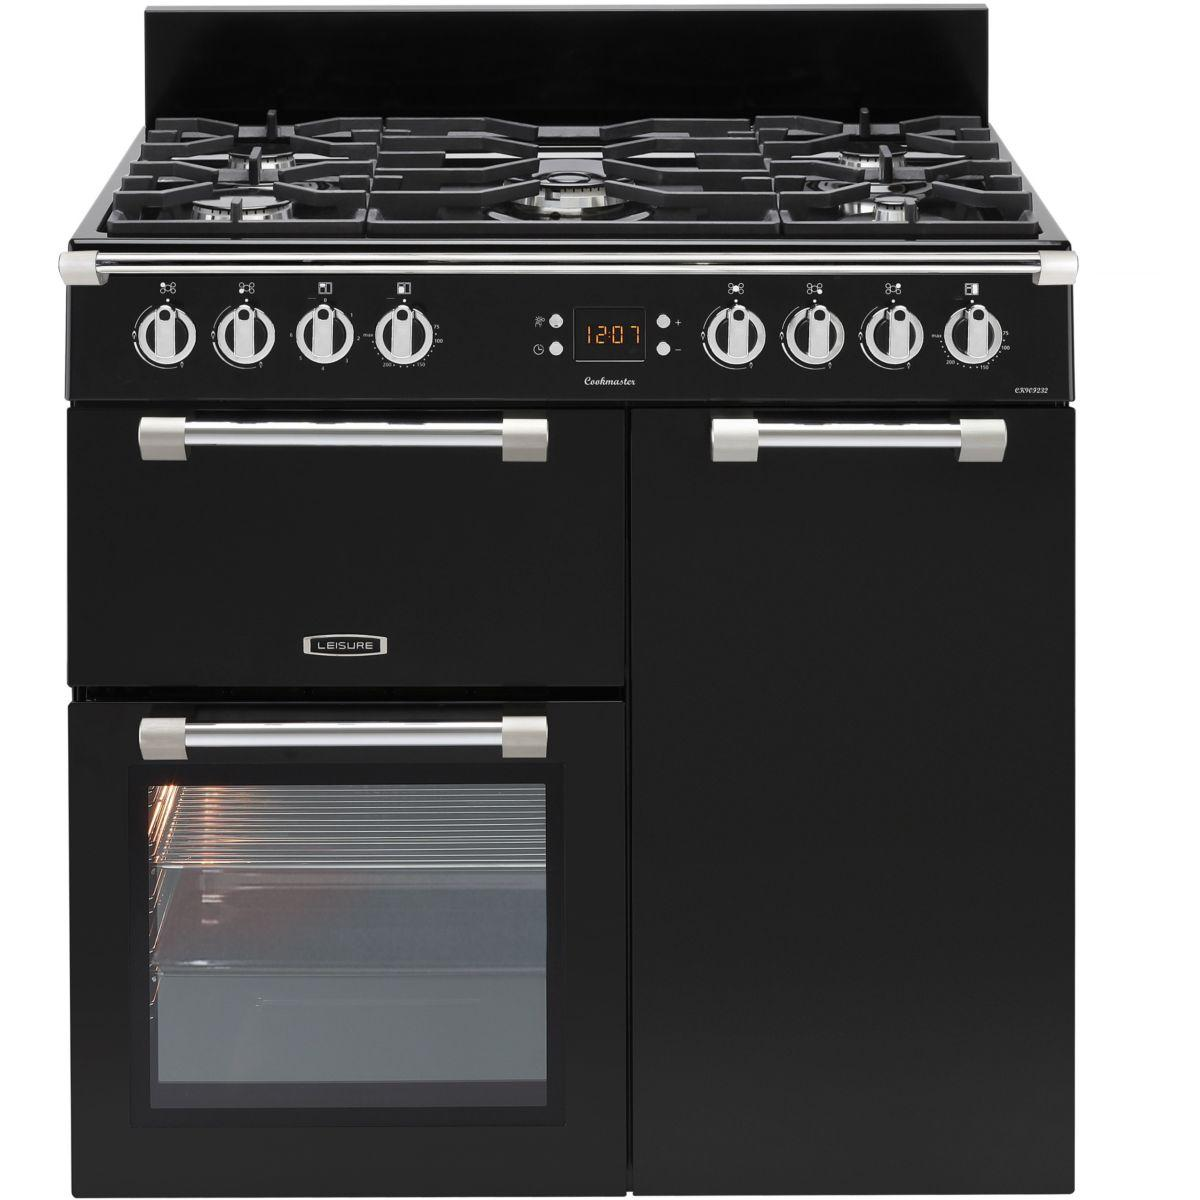 Piano de cuisson mixte leisure ck90f324k (photo)